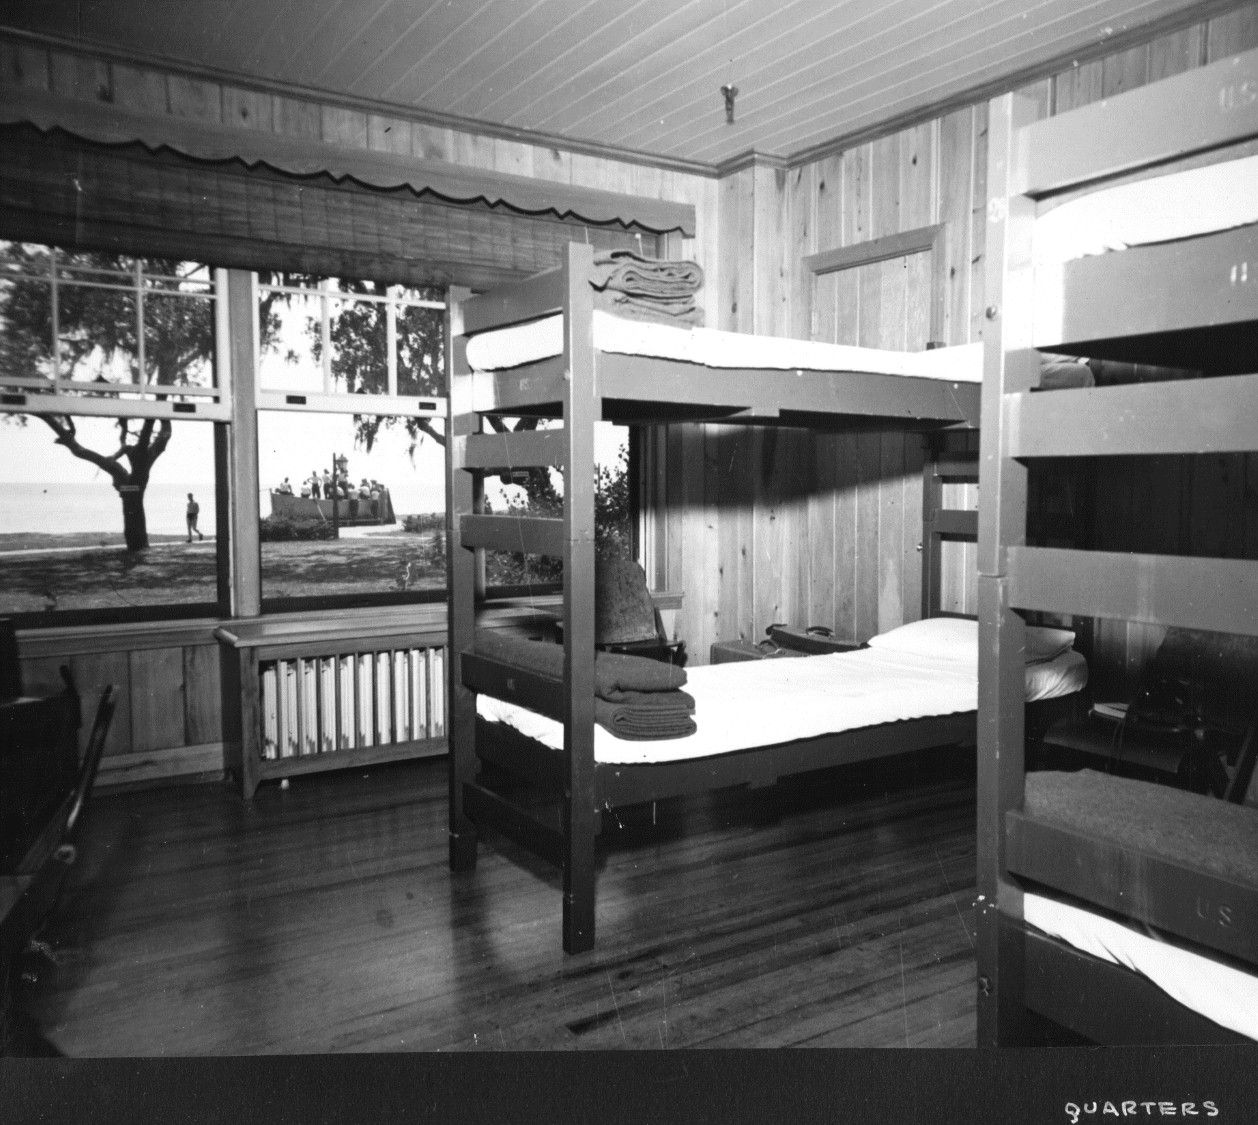 World War II Operation Ivory Soap Sleeping Quarters in